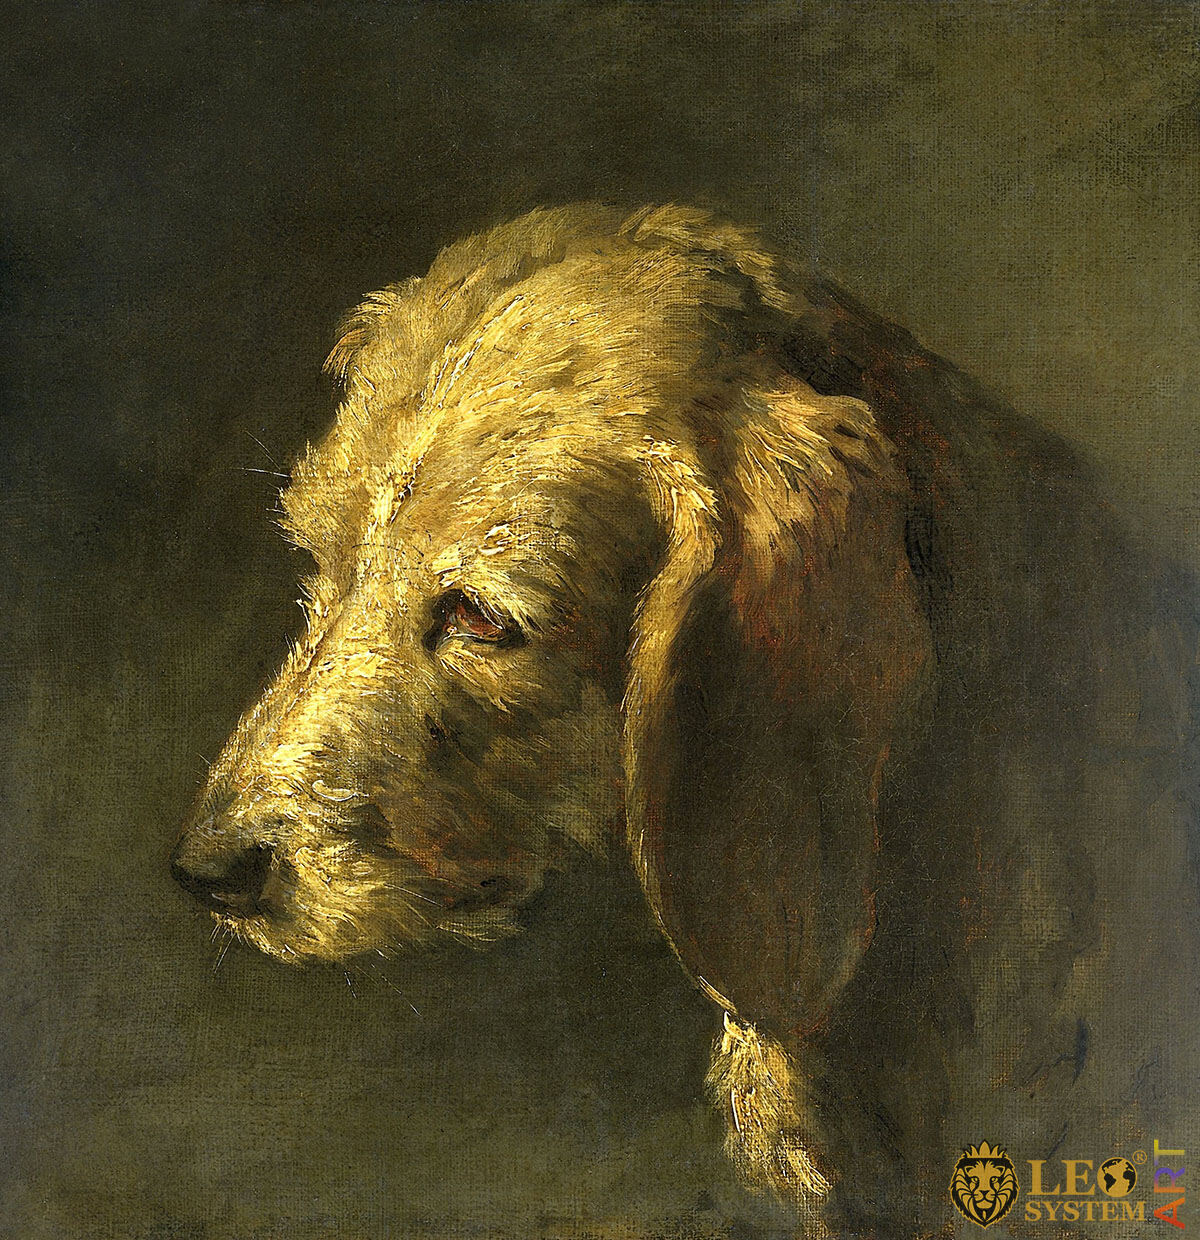 Head of a Dog, Artist: Nicolas Toussaint Charlet, 1820-1845, French Painting